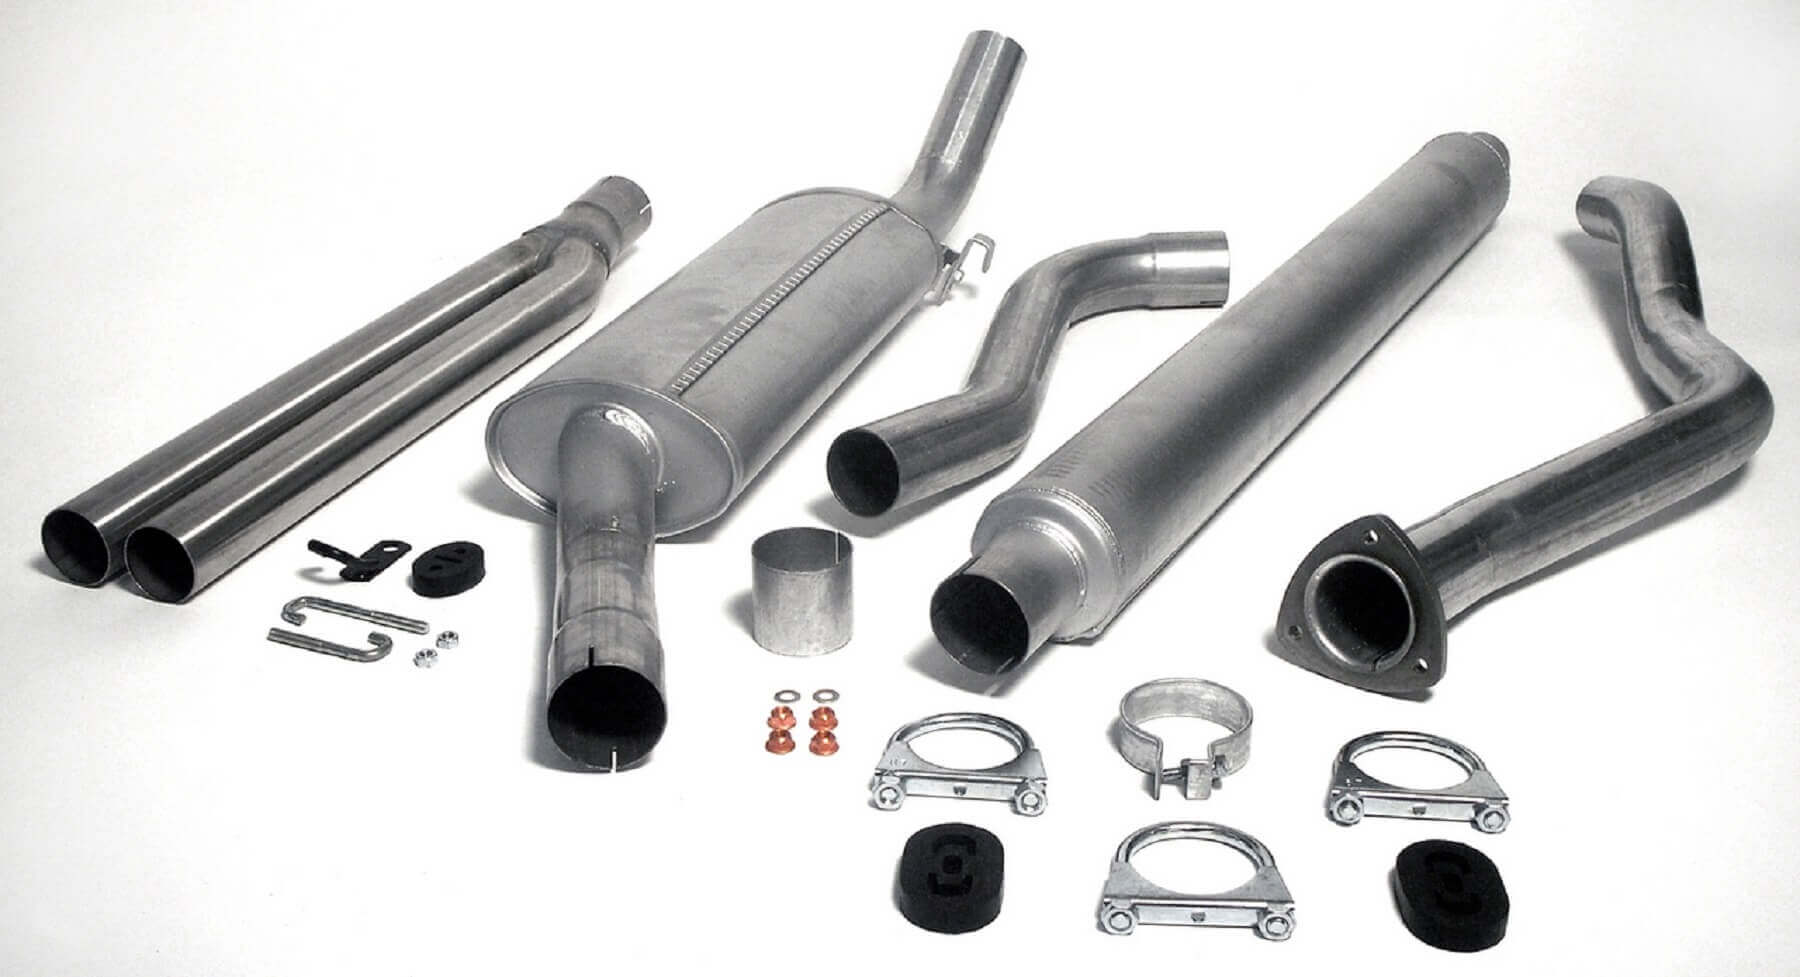 Saab 900 Turbo Jetex Performance Aluminised Steel Full Exhaust System with Twin Round 57mm Tail Pipes